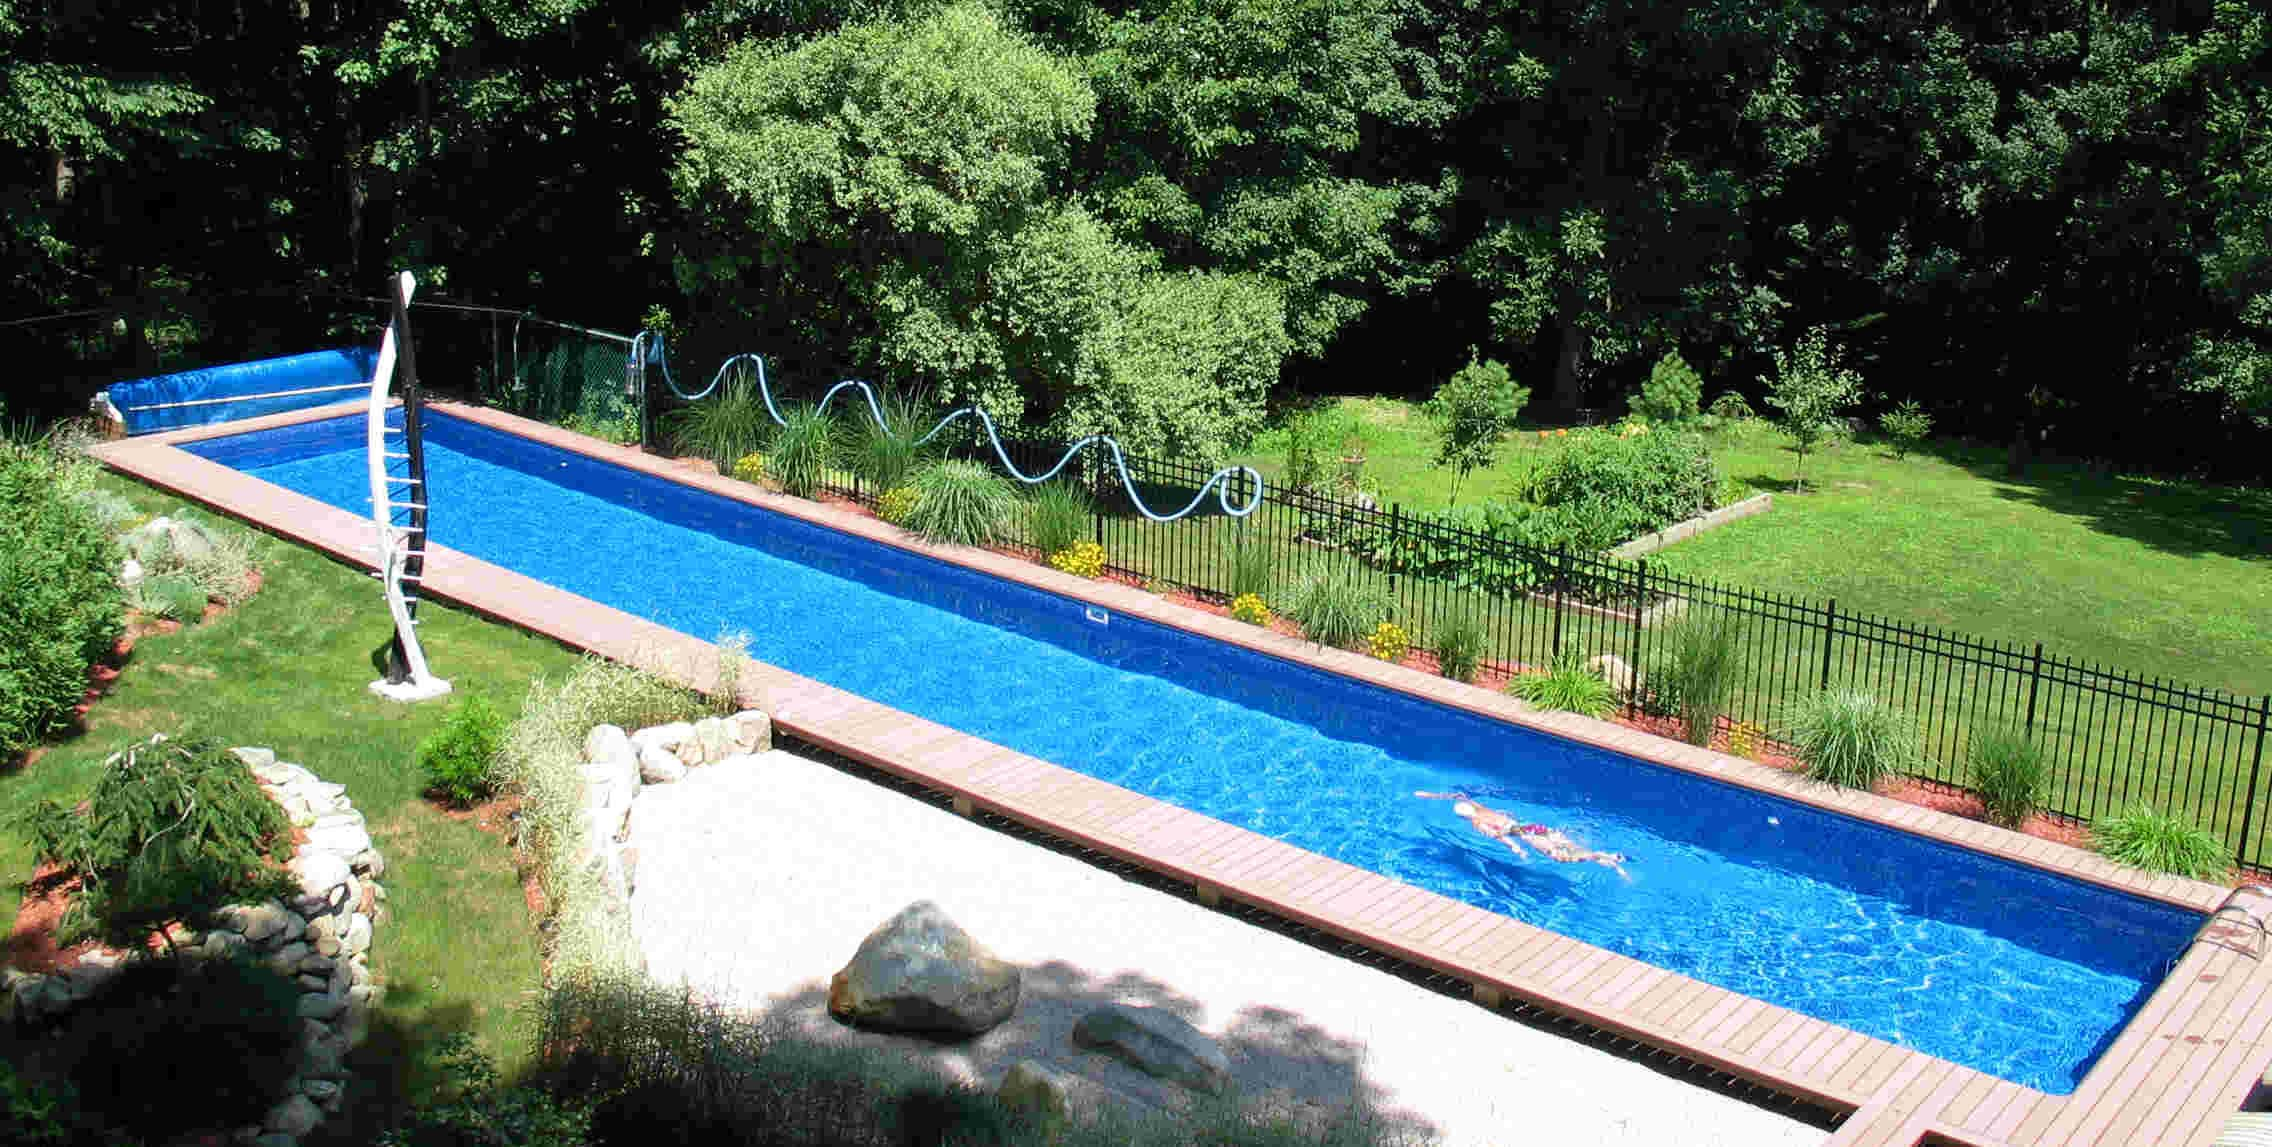 DIY Inground Swimming Pool | Backyard Design Ideas